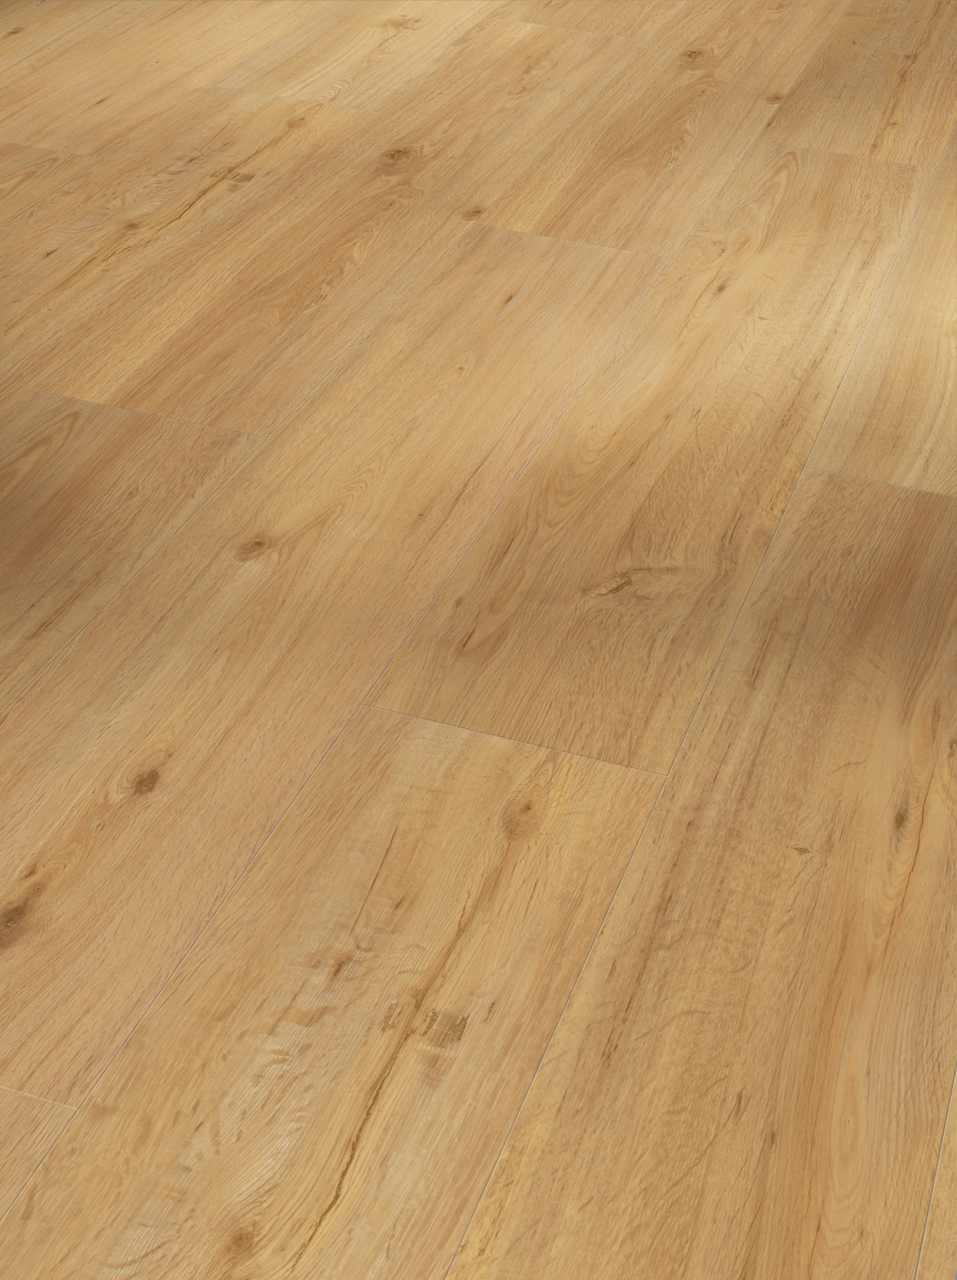 Laminat Vinyl Vinyl Laminat Grau Vinyl Special Offer Oak Grey Strip Wide Plank